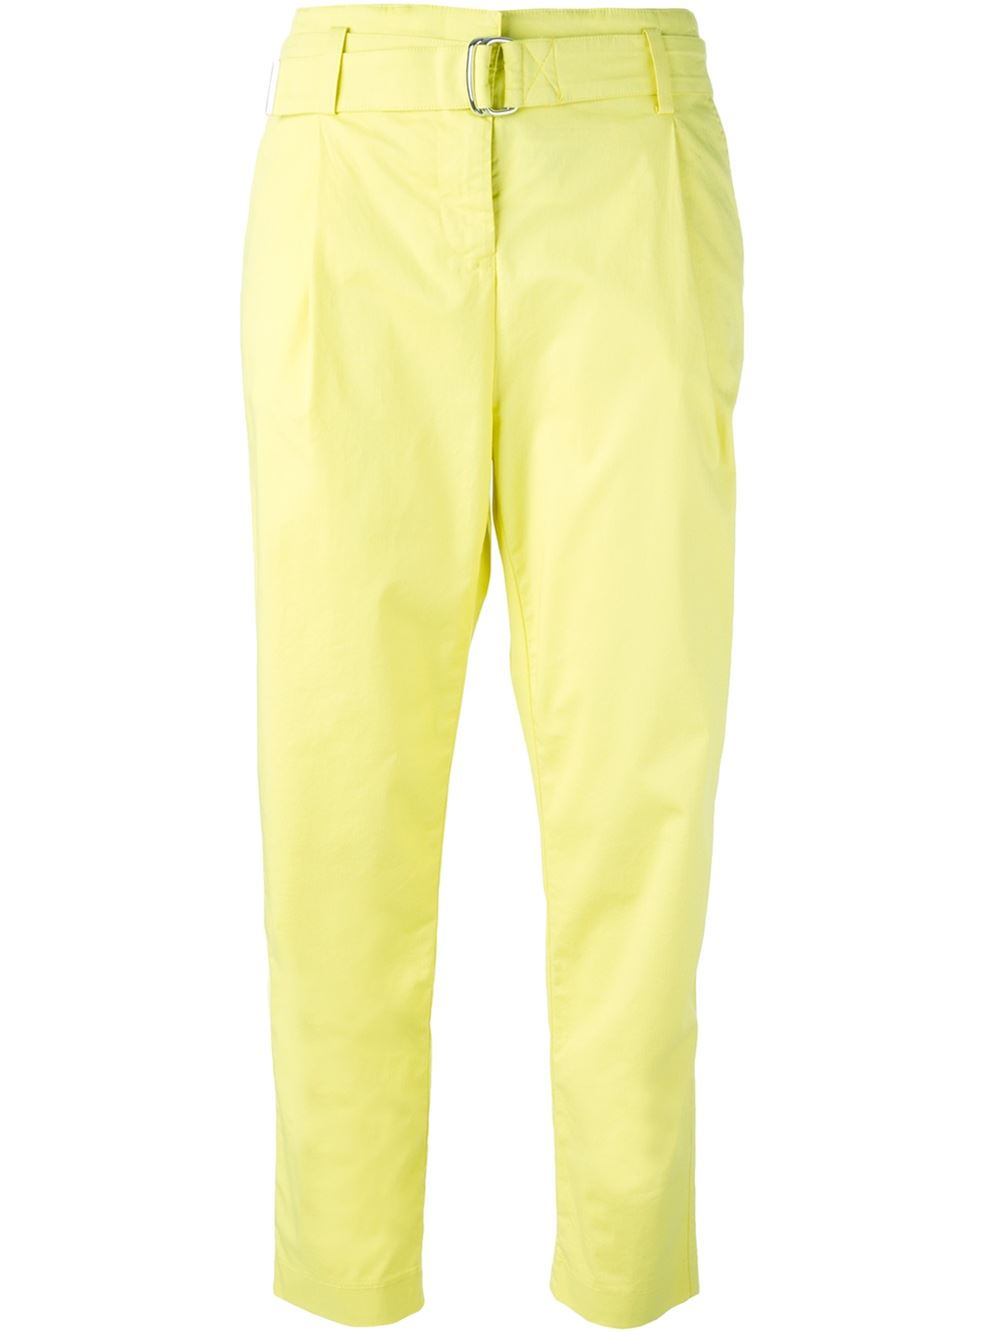 armani jeans tapered cropped trousers in yellow yellow orange lyst. Black Bedroom Furniture Sets. Home Design Ideas